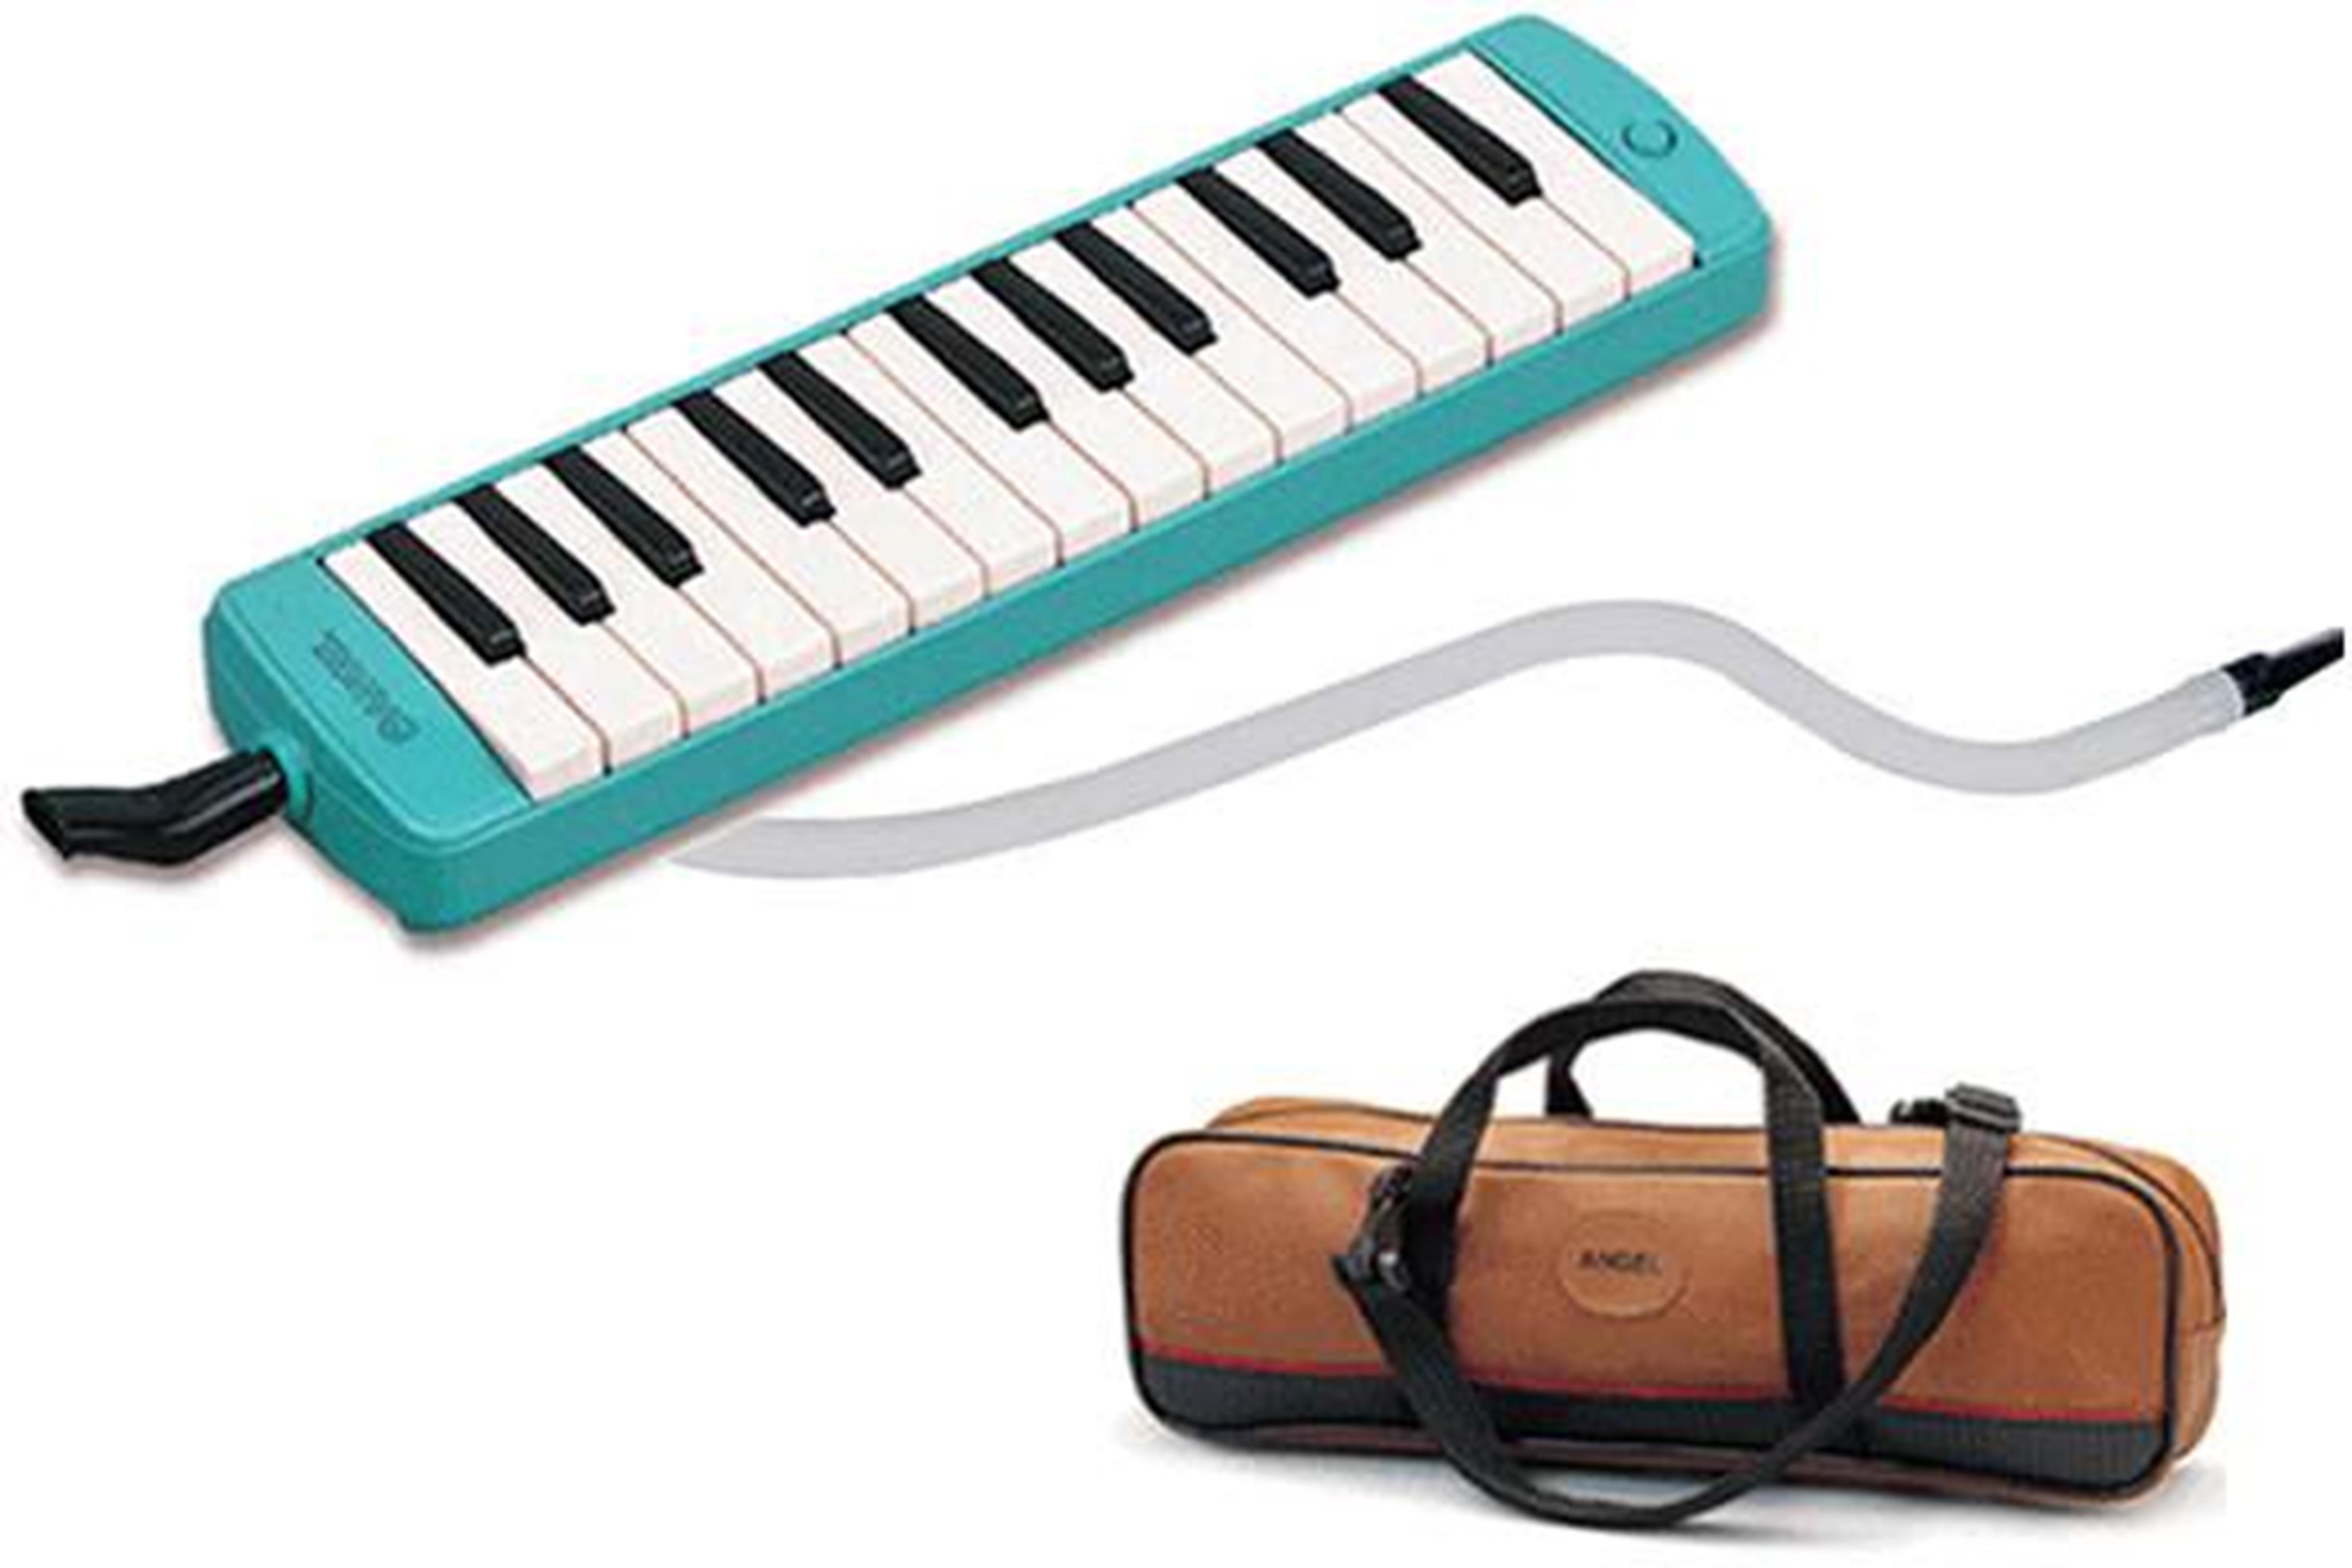 ANGEL ANGEL 27 MELODICA DIDATTICA AM27K